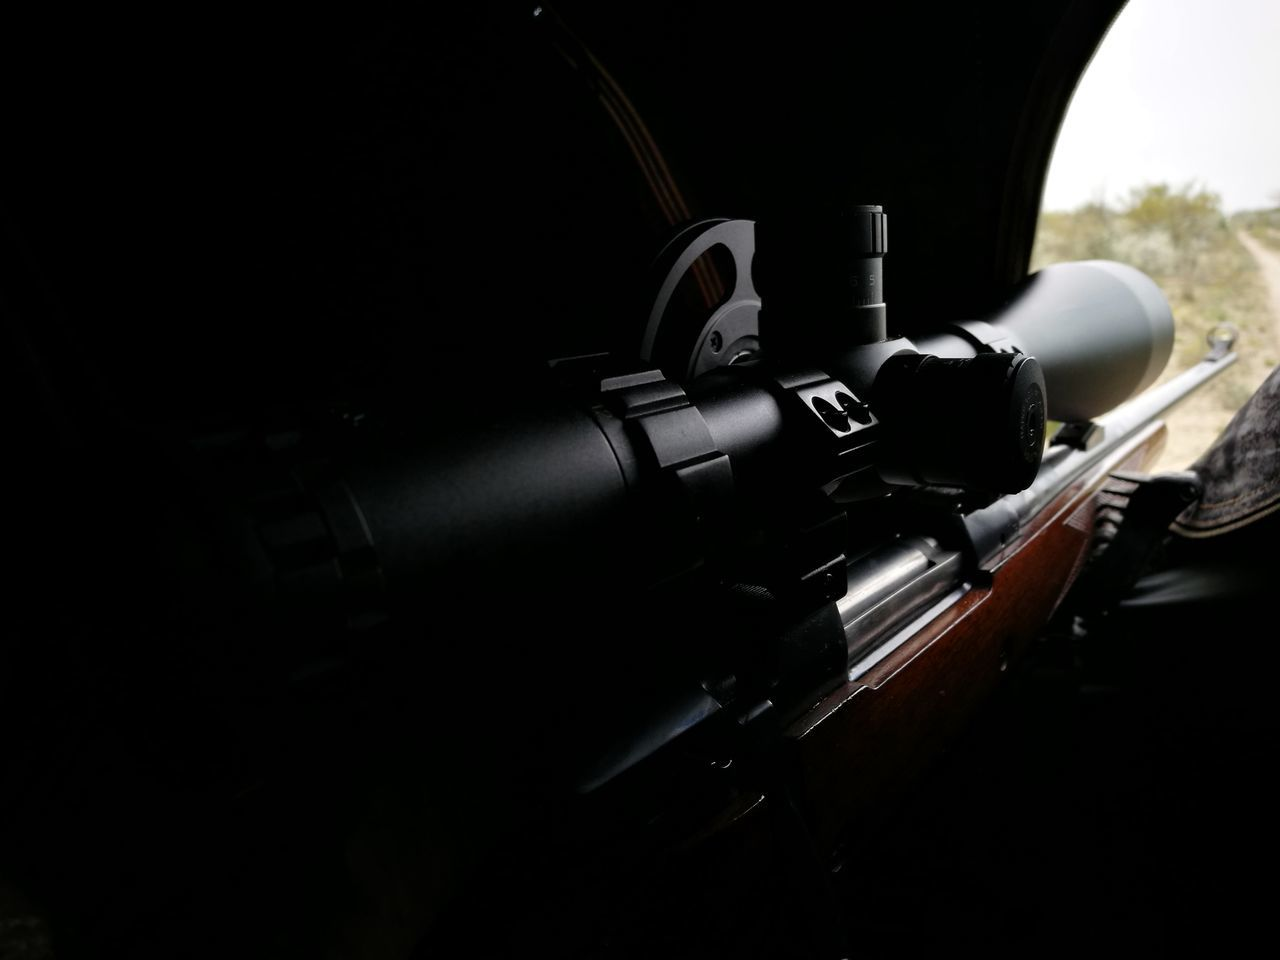 Riflescopes Black Background Caceria Close-up Coahuila Coahuila, México Deer Hunter Deer Hunting HAWKE OPTICS Hunter Hunters Hunting Night No People Outdoors Technology Česká Zbrojovka